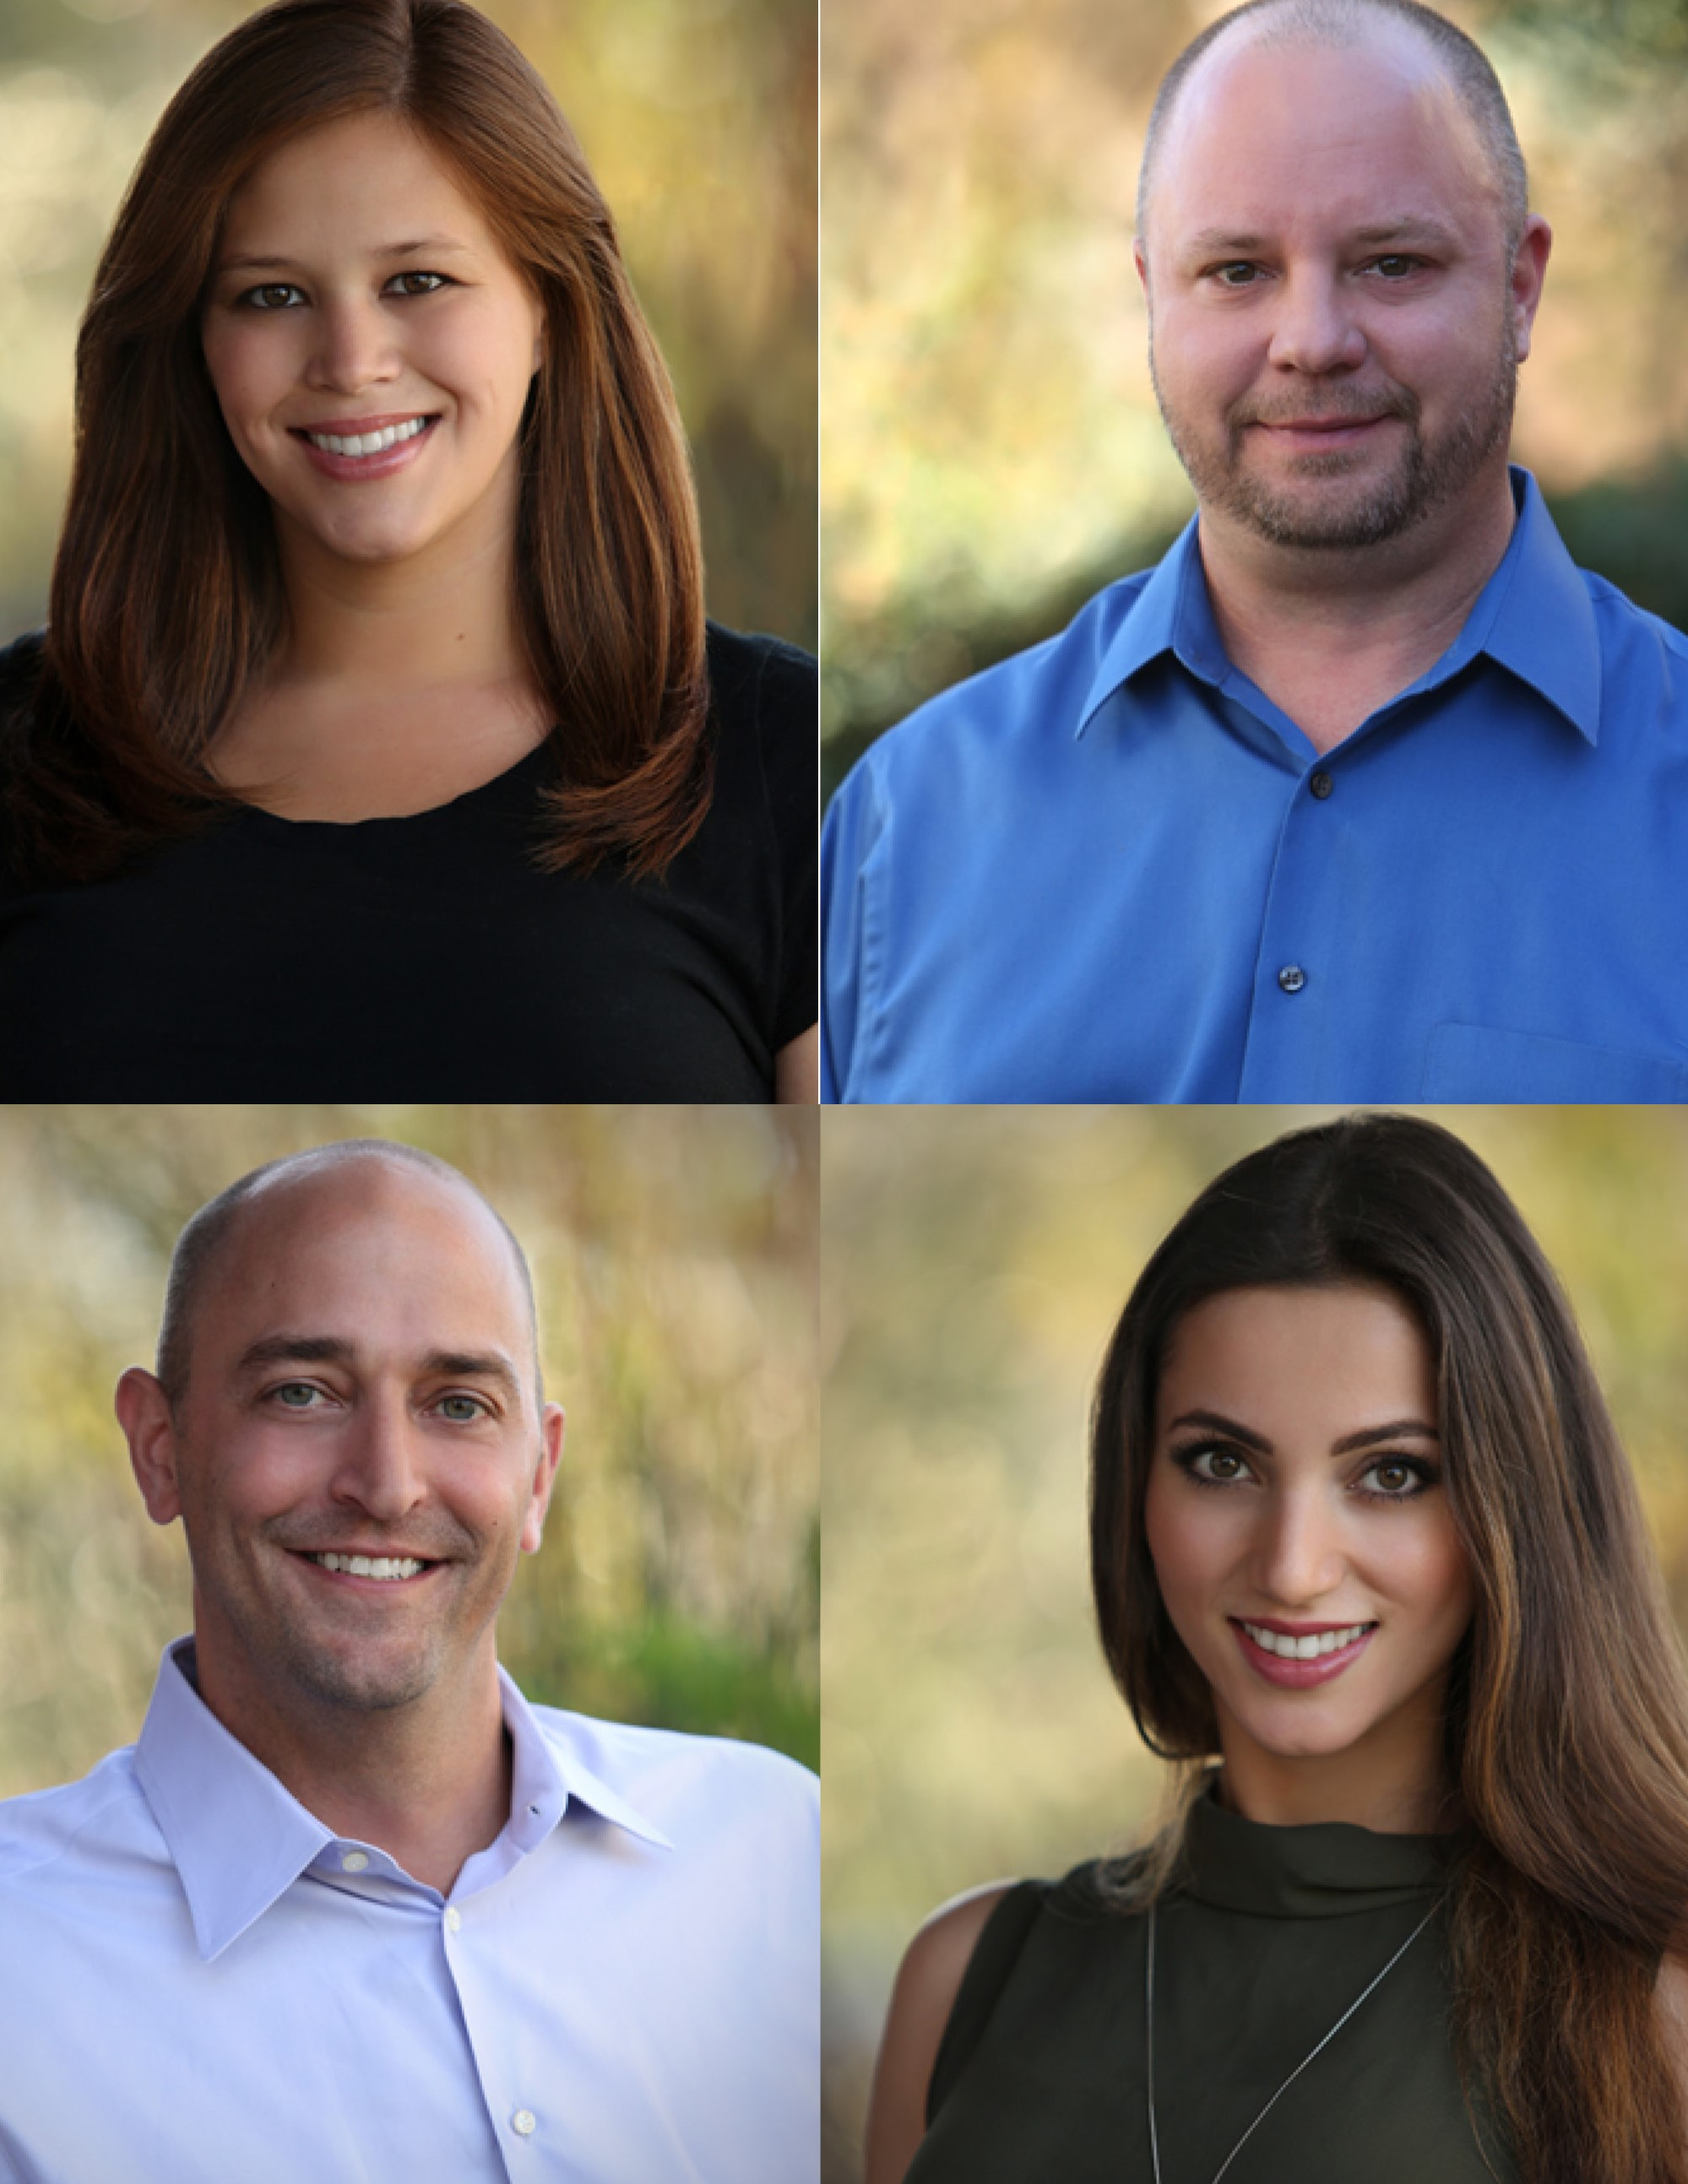 Pictured Above:  Erica (Top Left), Kris (Top Right), Patrick (Bottom Left), Lida (Bottom Right)